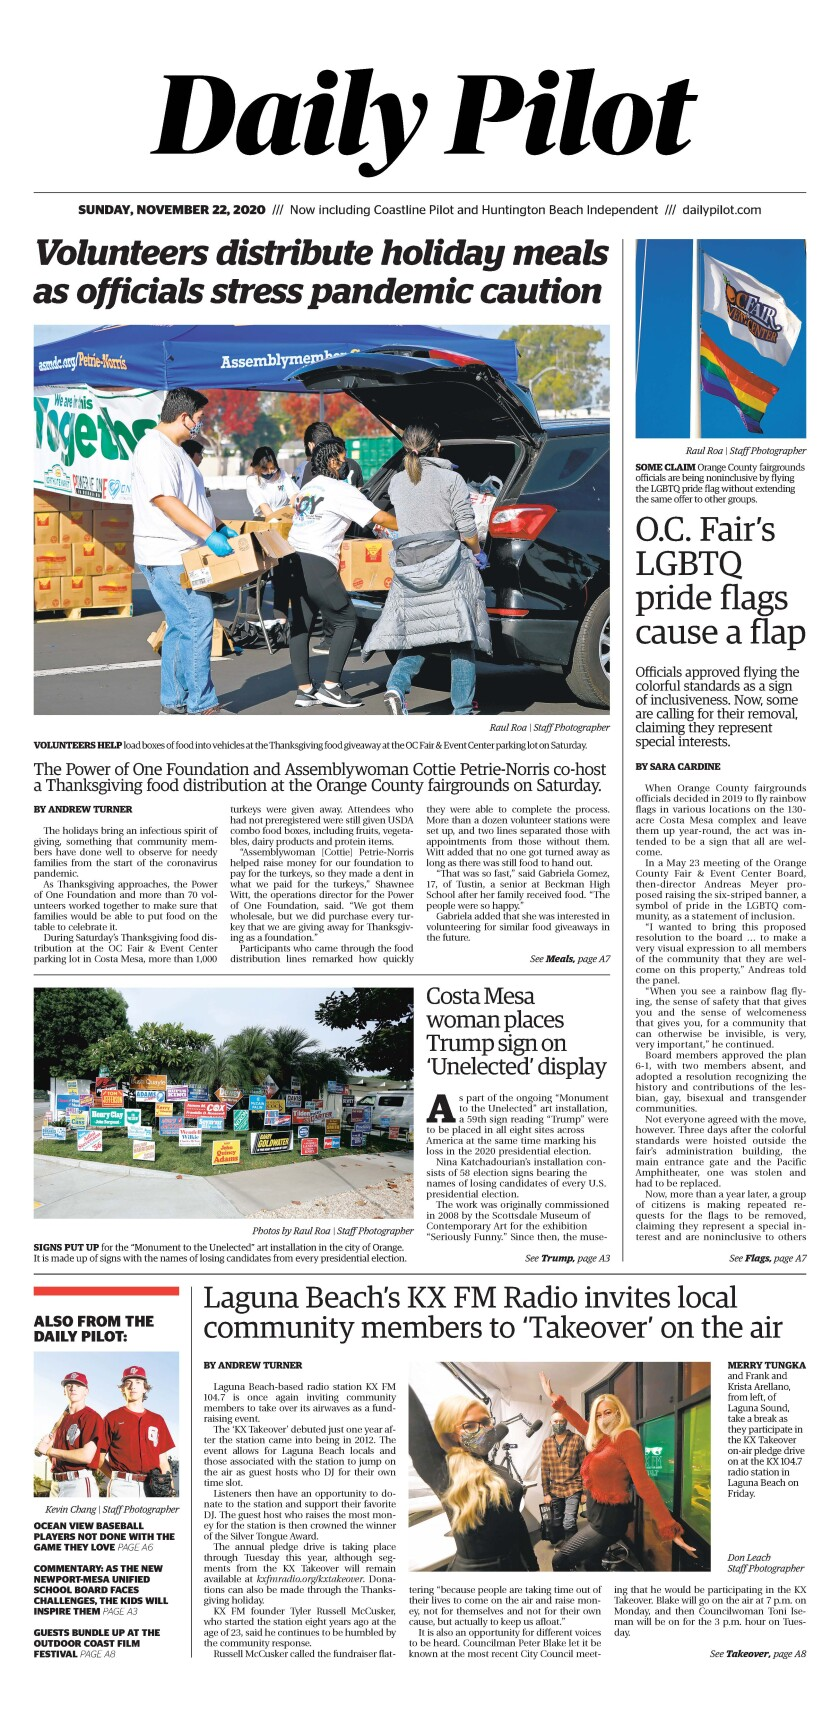 Sunday's Daily Pilot cover.